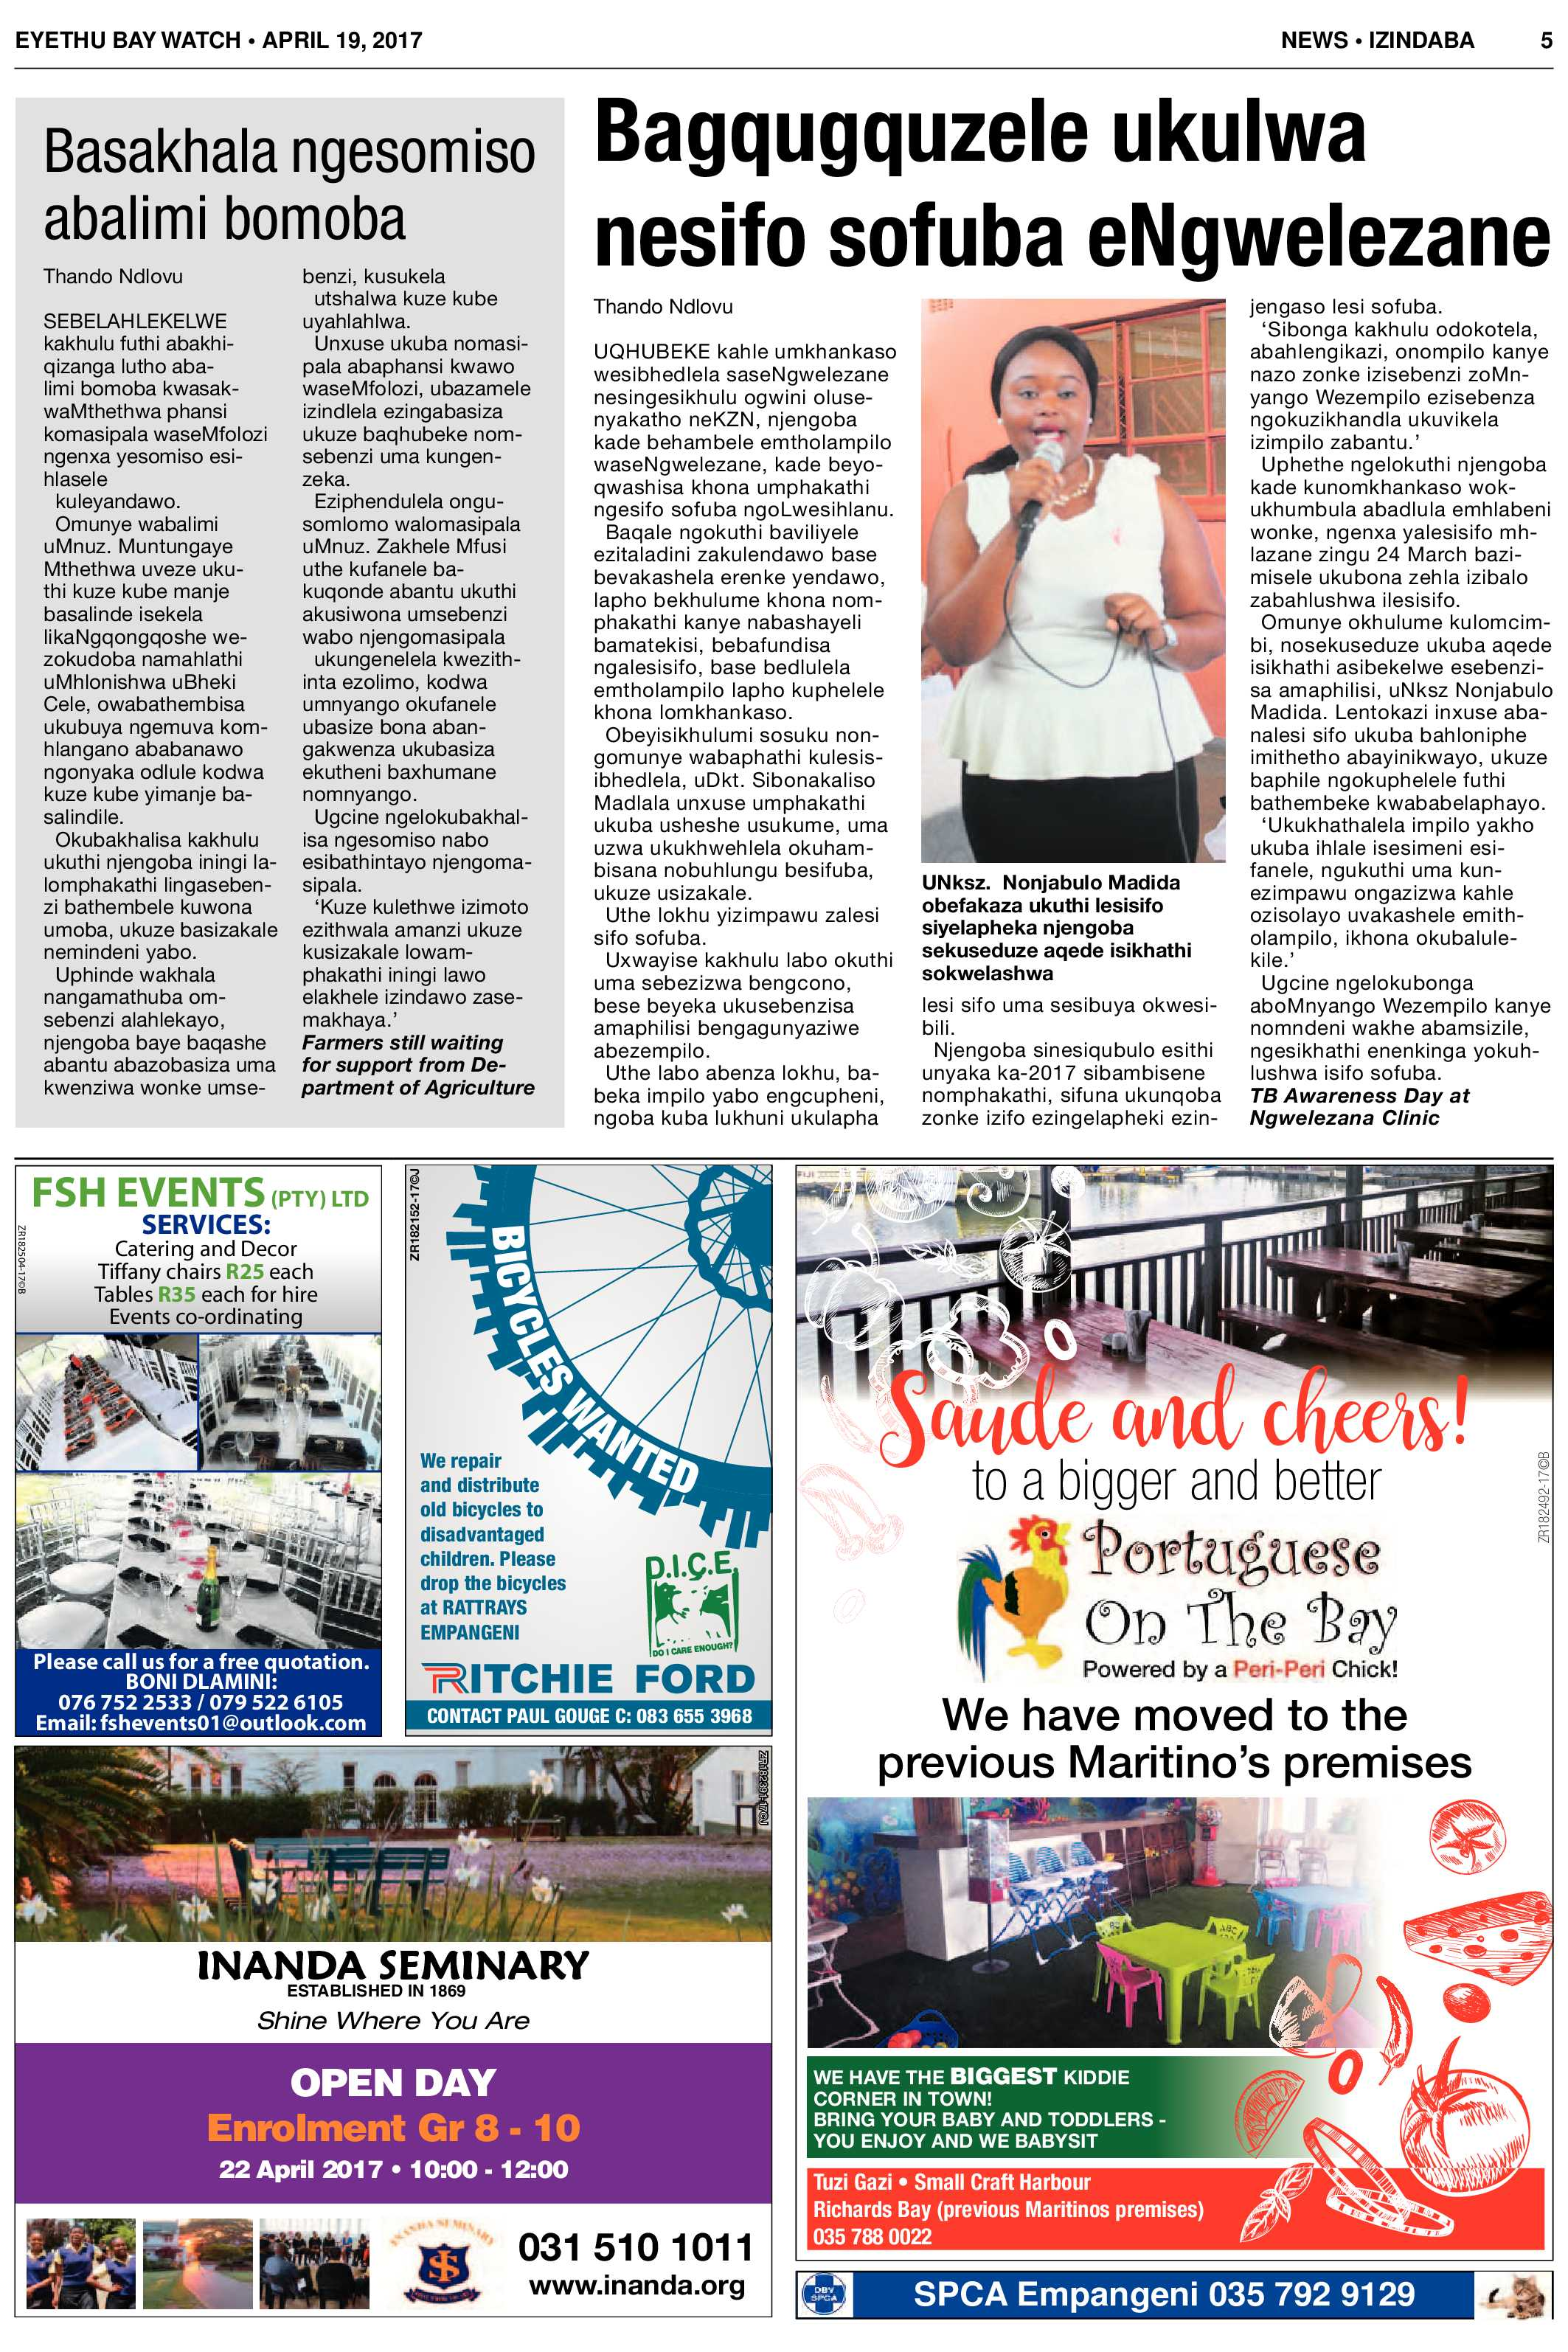 eyethu-baywatch-19-april-epapers-page-5